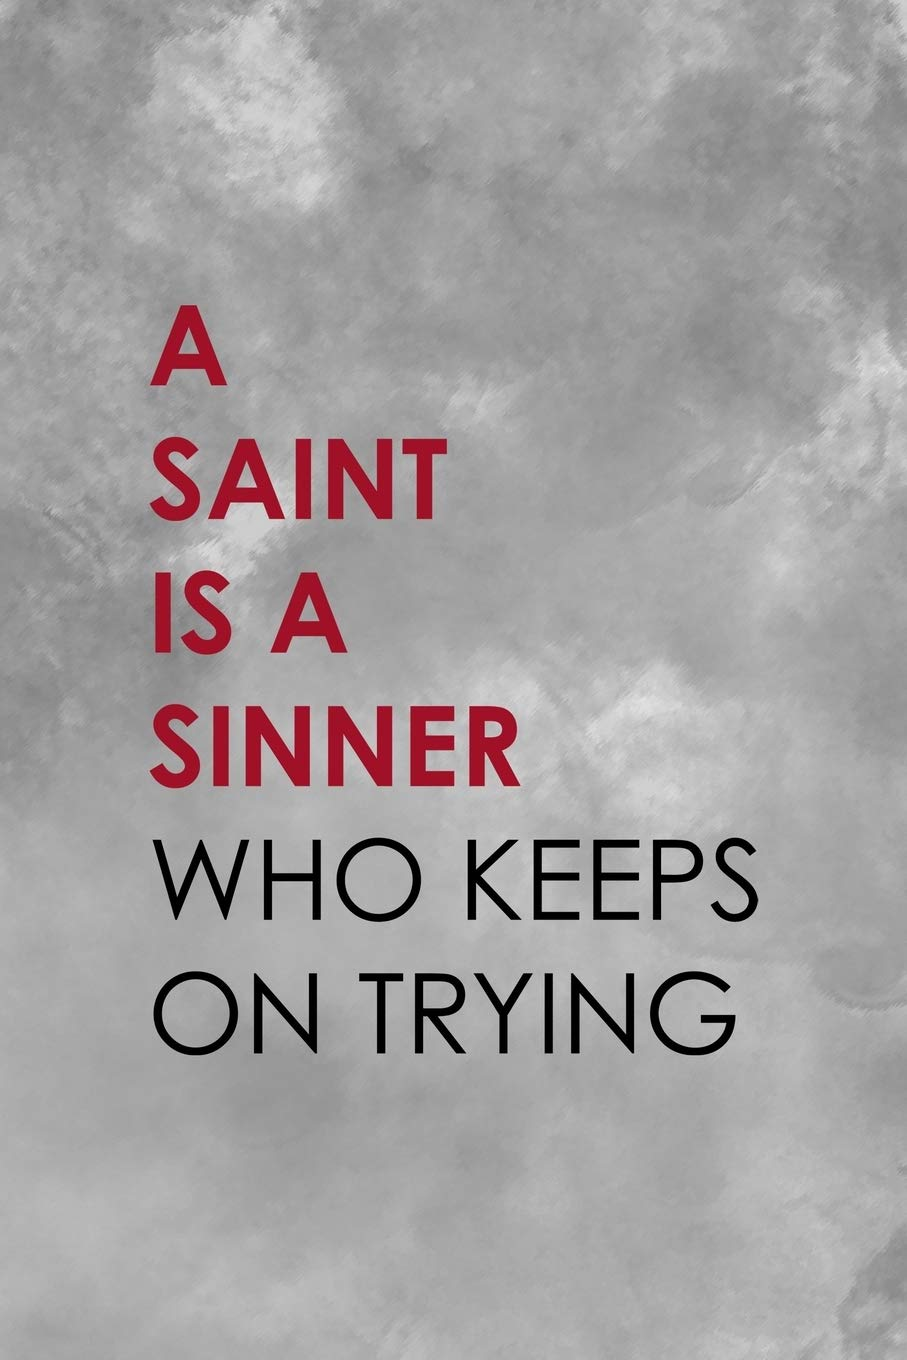 A Saint Is A Sinner Who Keeps On Trying Notebook Journal Composition Blank Lined Diary Notepad 120 Pages Paperback Grey Texture Sinner Robinson Tc Angela 9781671344969 Books